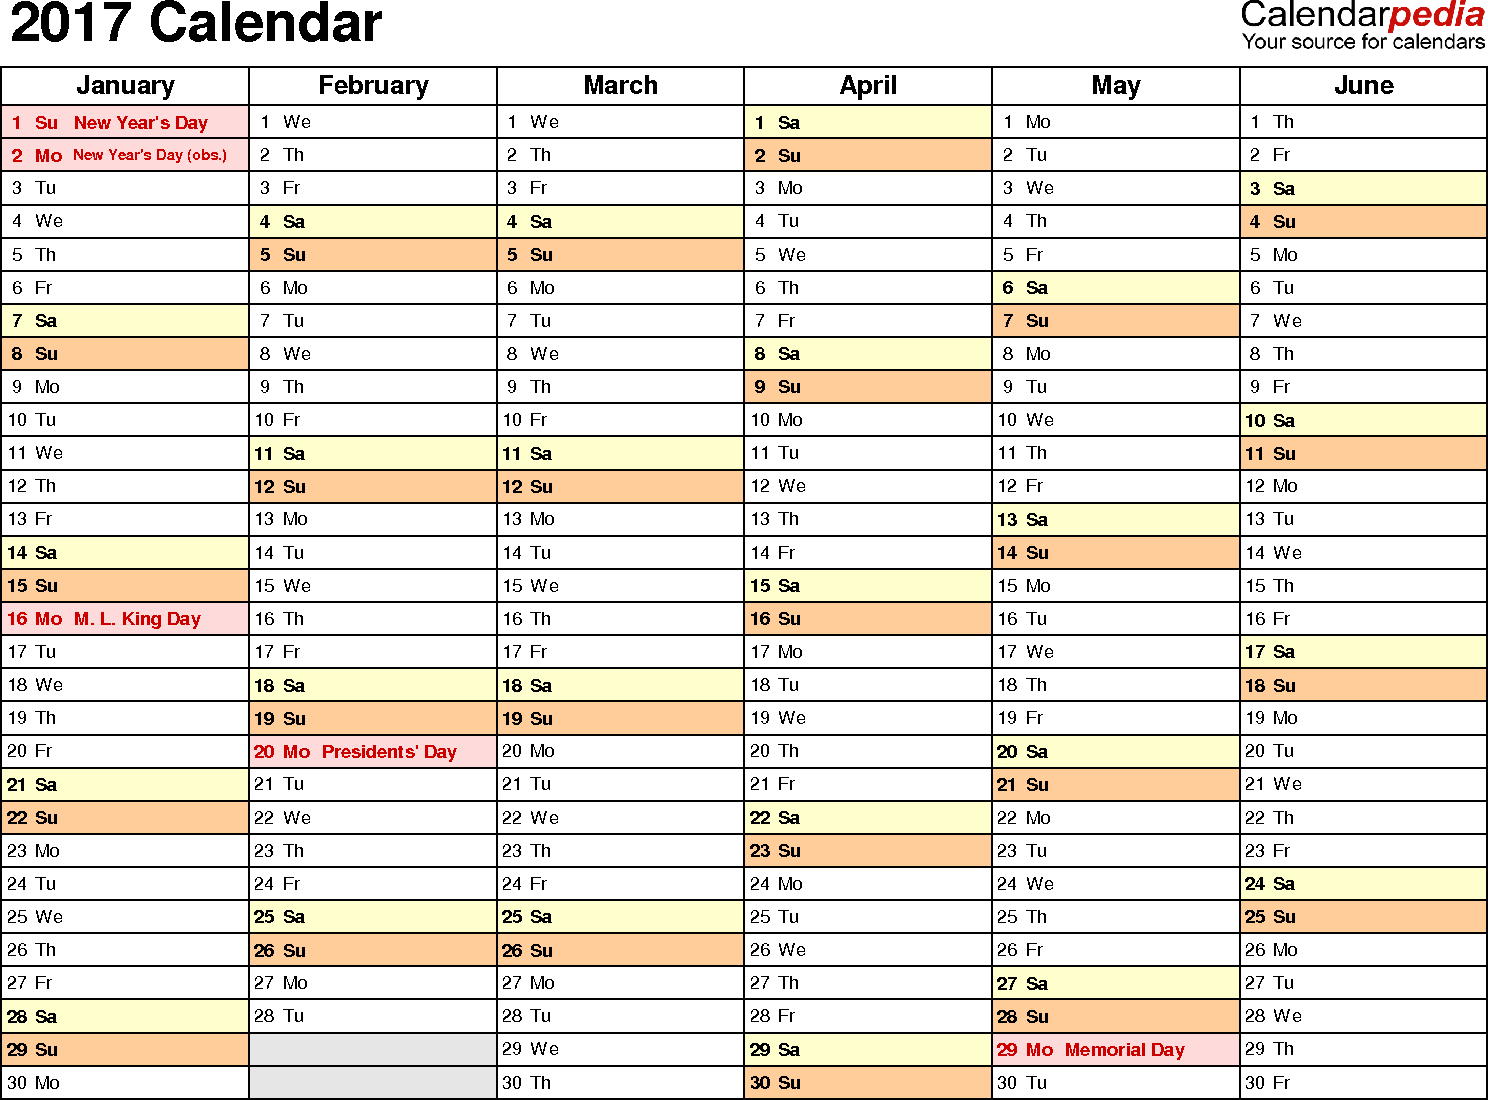 Ediblewildsus  Seductive  Calendar  Download  Free Printable Excel Templates Xls With Fetching Template   Calendar For Excel Months Horizontally  Pages Landscape Orientation With Lovely How To Compile Data In Excel Also Vba In Excel Examples In Addition Xml To Excel Using Java And Excel Staffing Agency As Well As Examples Of Excel Spreadsheets Additionally Rank Function In Excel  From Calendarpediacom With Ediblewildsus  Fetching  Calendar  Download  Free Printable Excel Templates Xls With Lovely Template   Calendar For Excel Months Horizontally  Pages Landscape Orientation And Seductive How To Compile Data In Excel Also Vba In Excel Examples In Addition Xml To Excel Using Java From Calendarpediacom